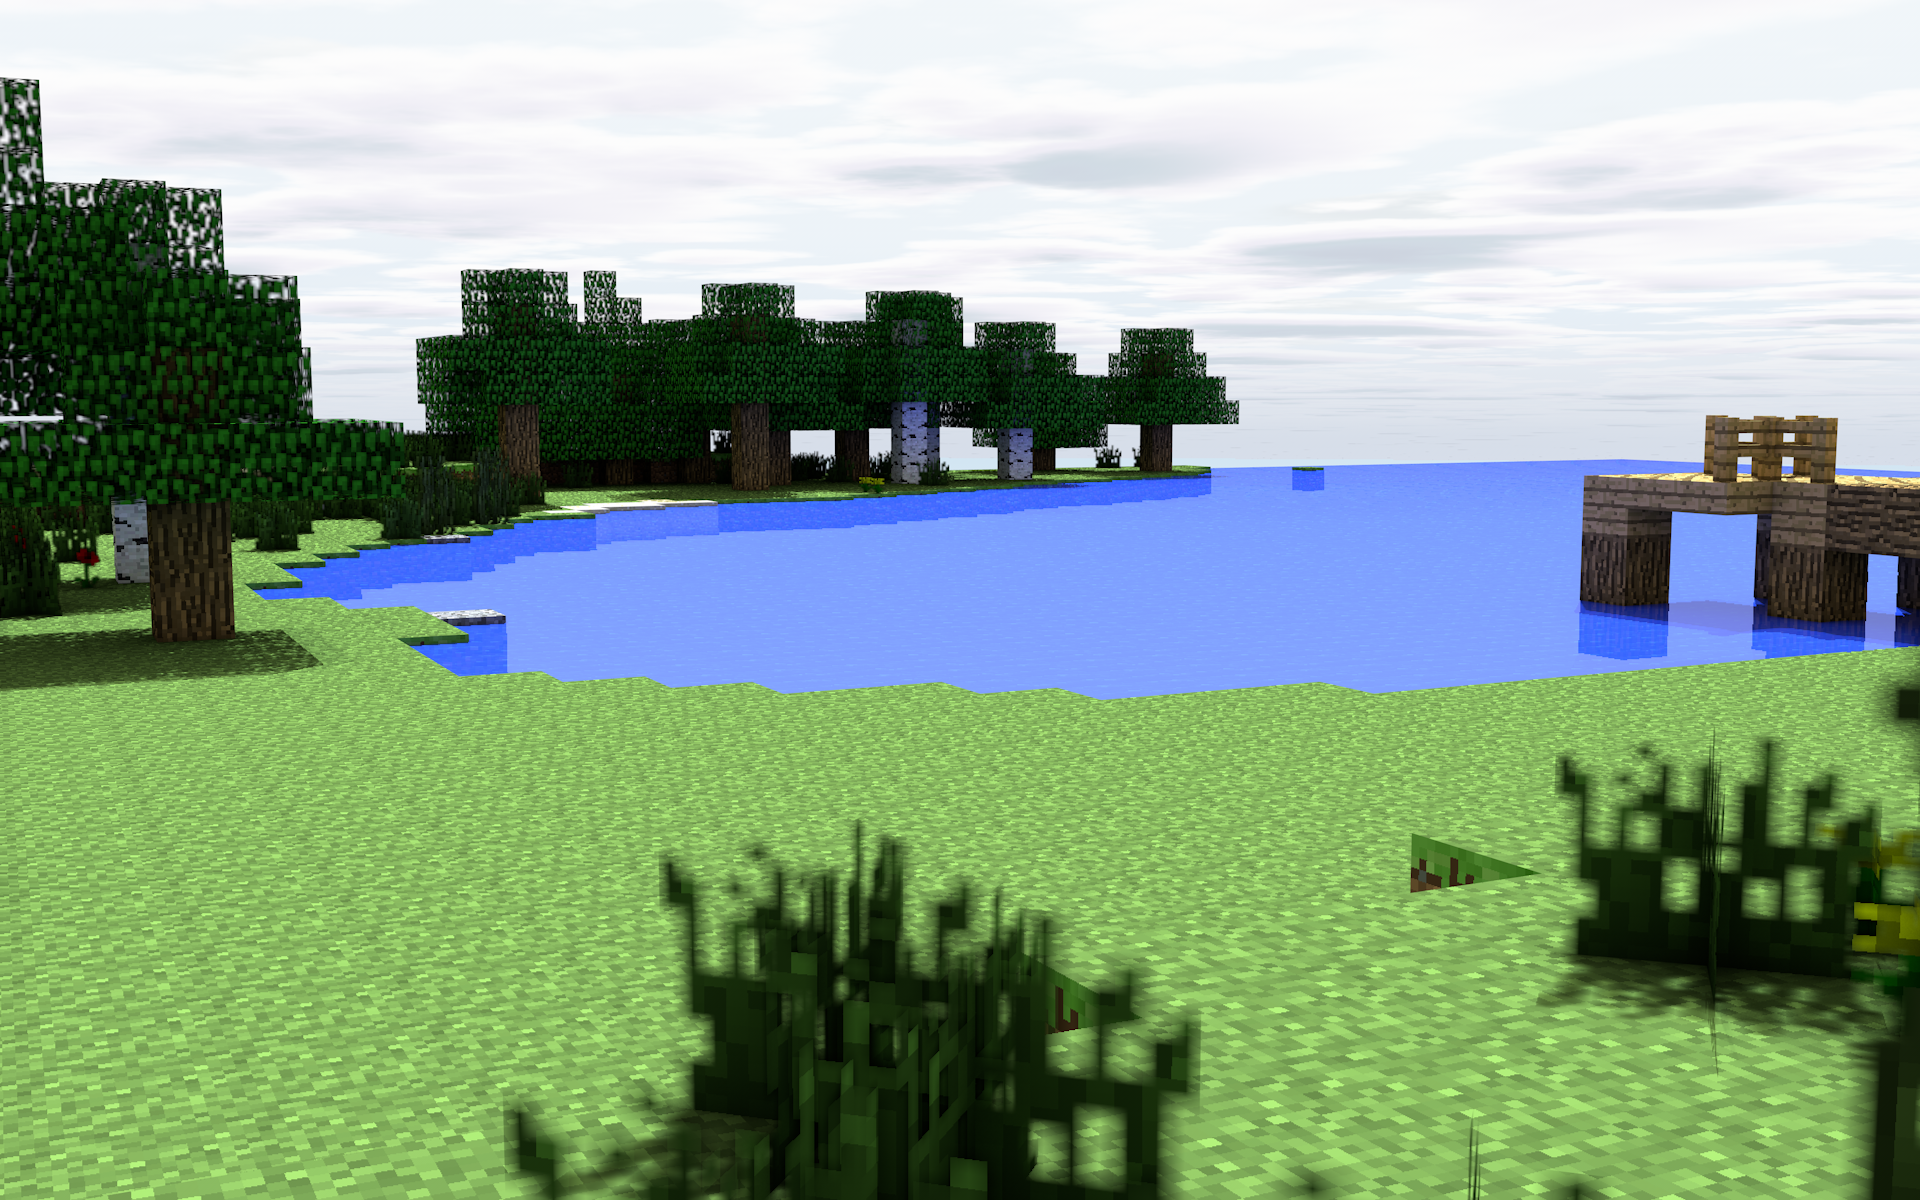 Minecraft Hd Png Transparent Minecraft Hd Png Images Pluspng